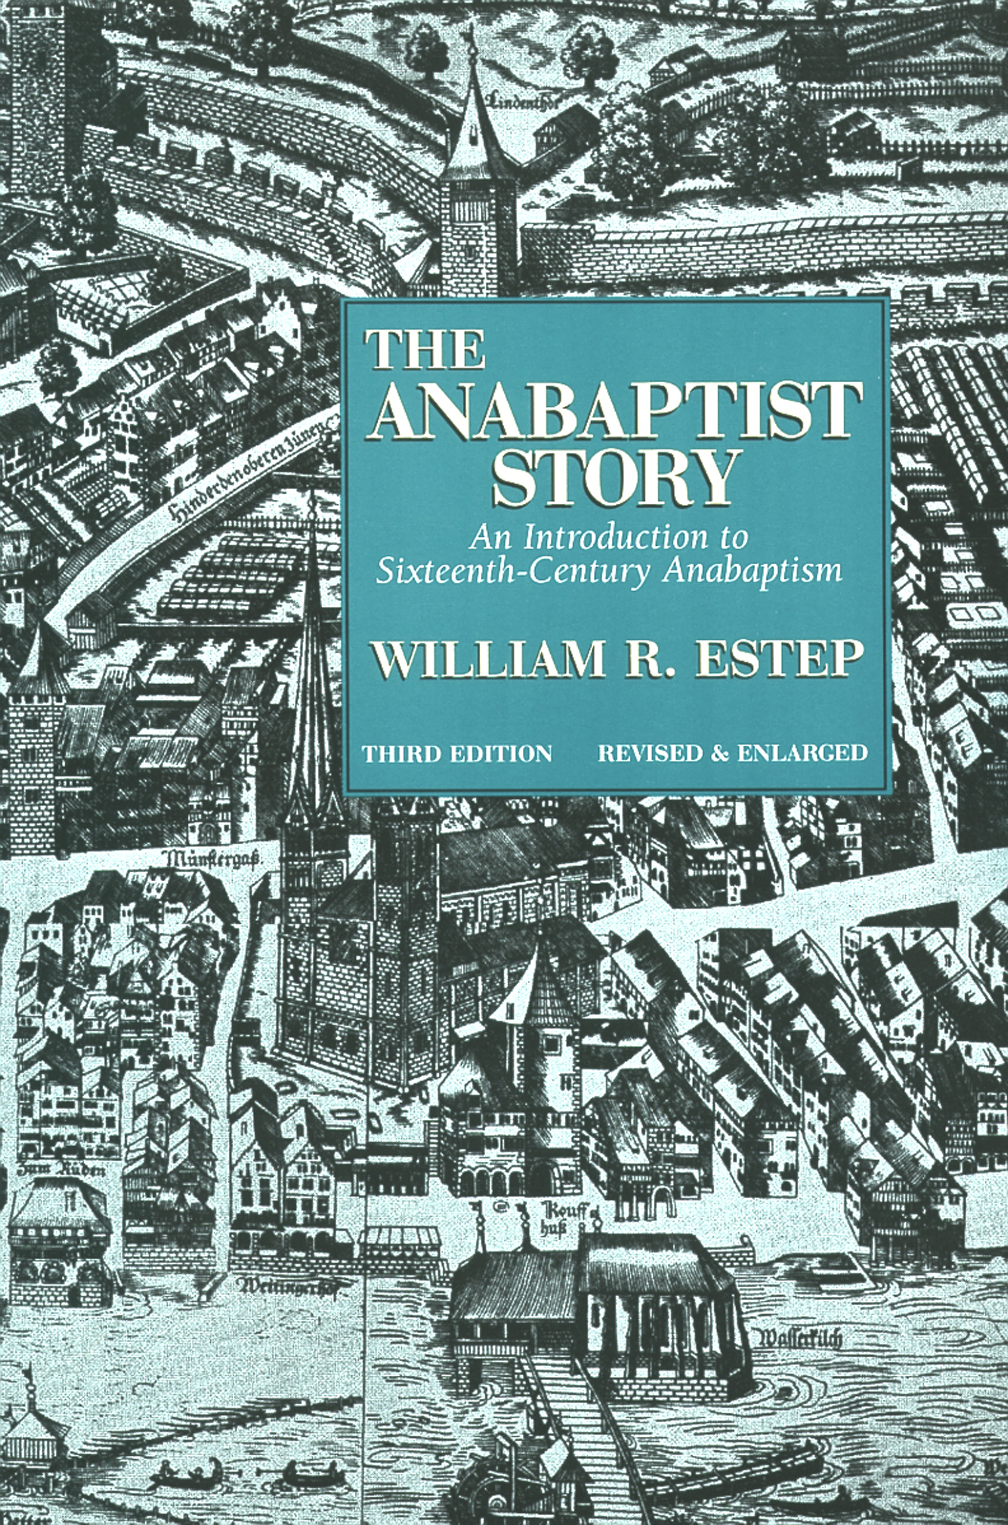 an analysis of the early anabaptist movement in the europe The anabaptist story four hundred seventy years ago the anabaptist movement was launched with the the ministries of the early anabaptist leaders are.